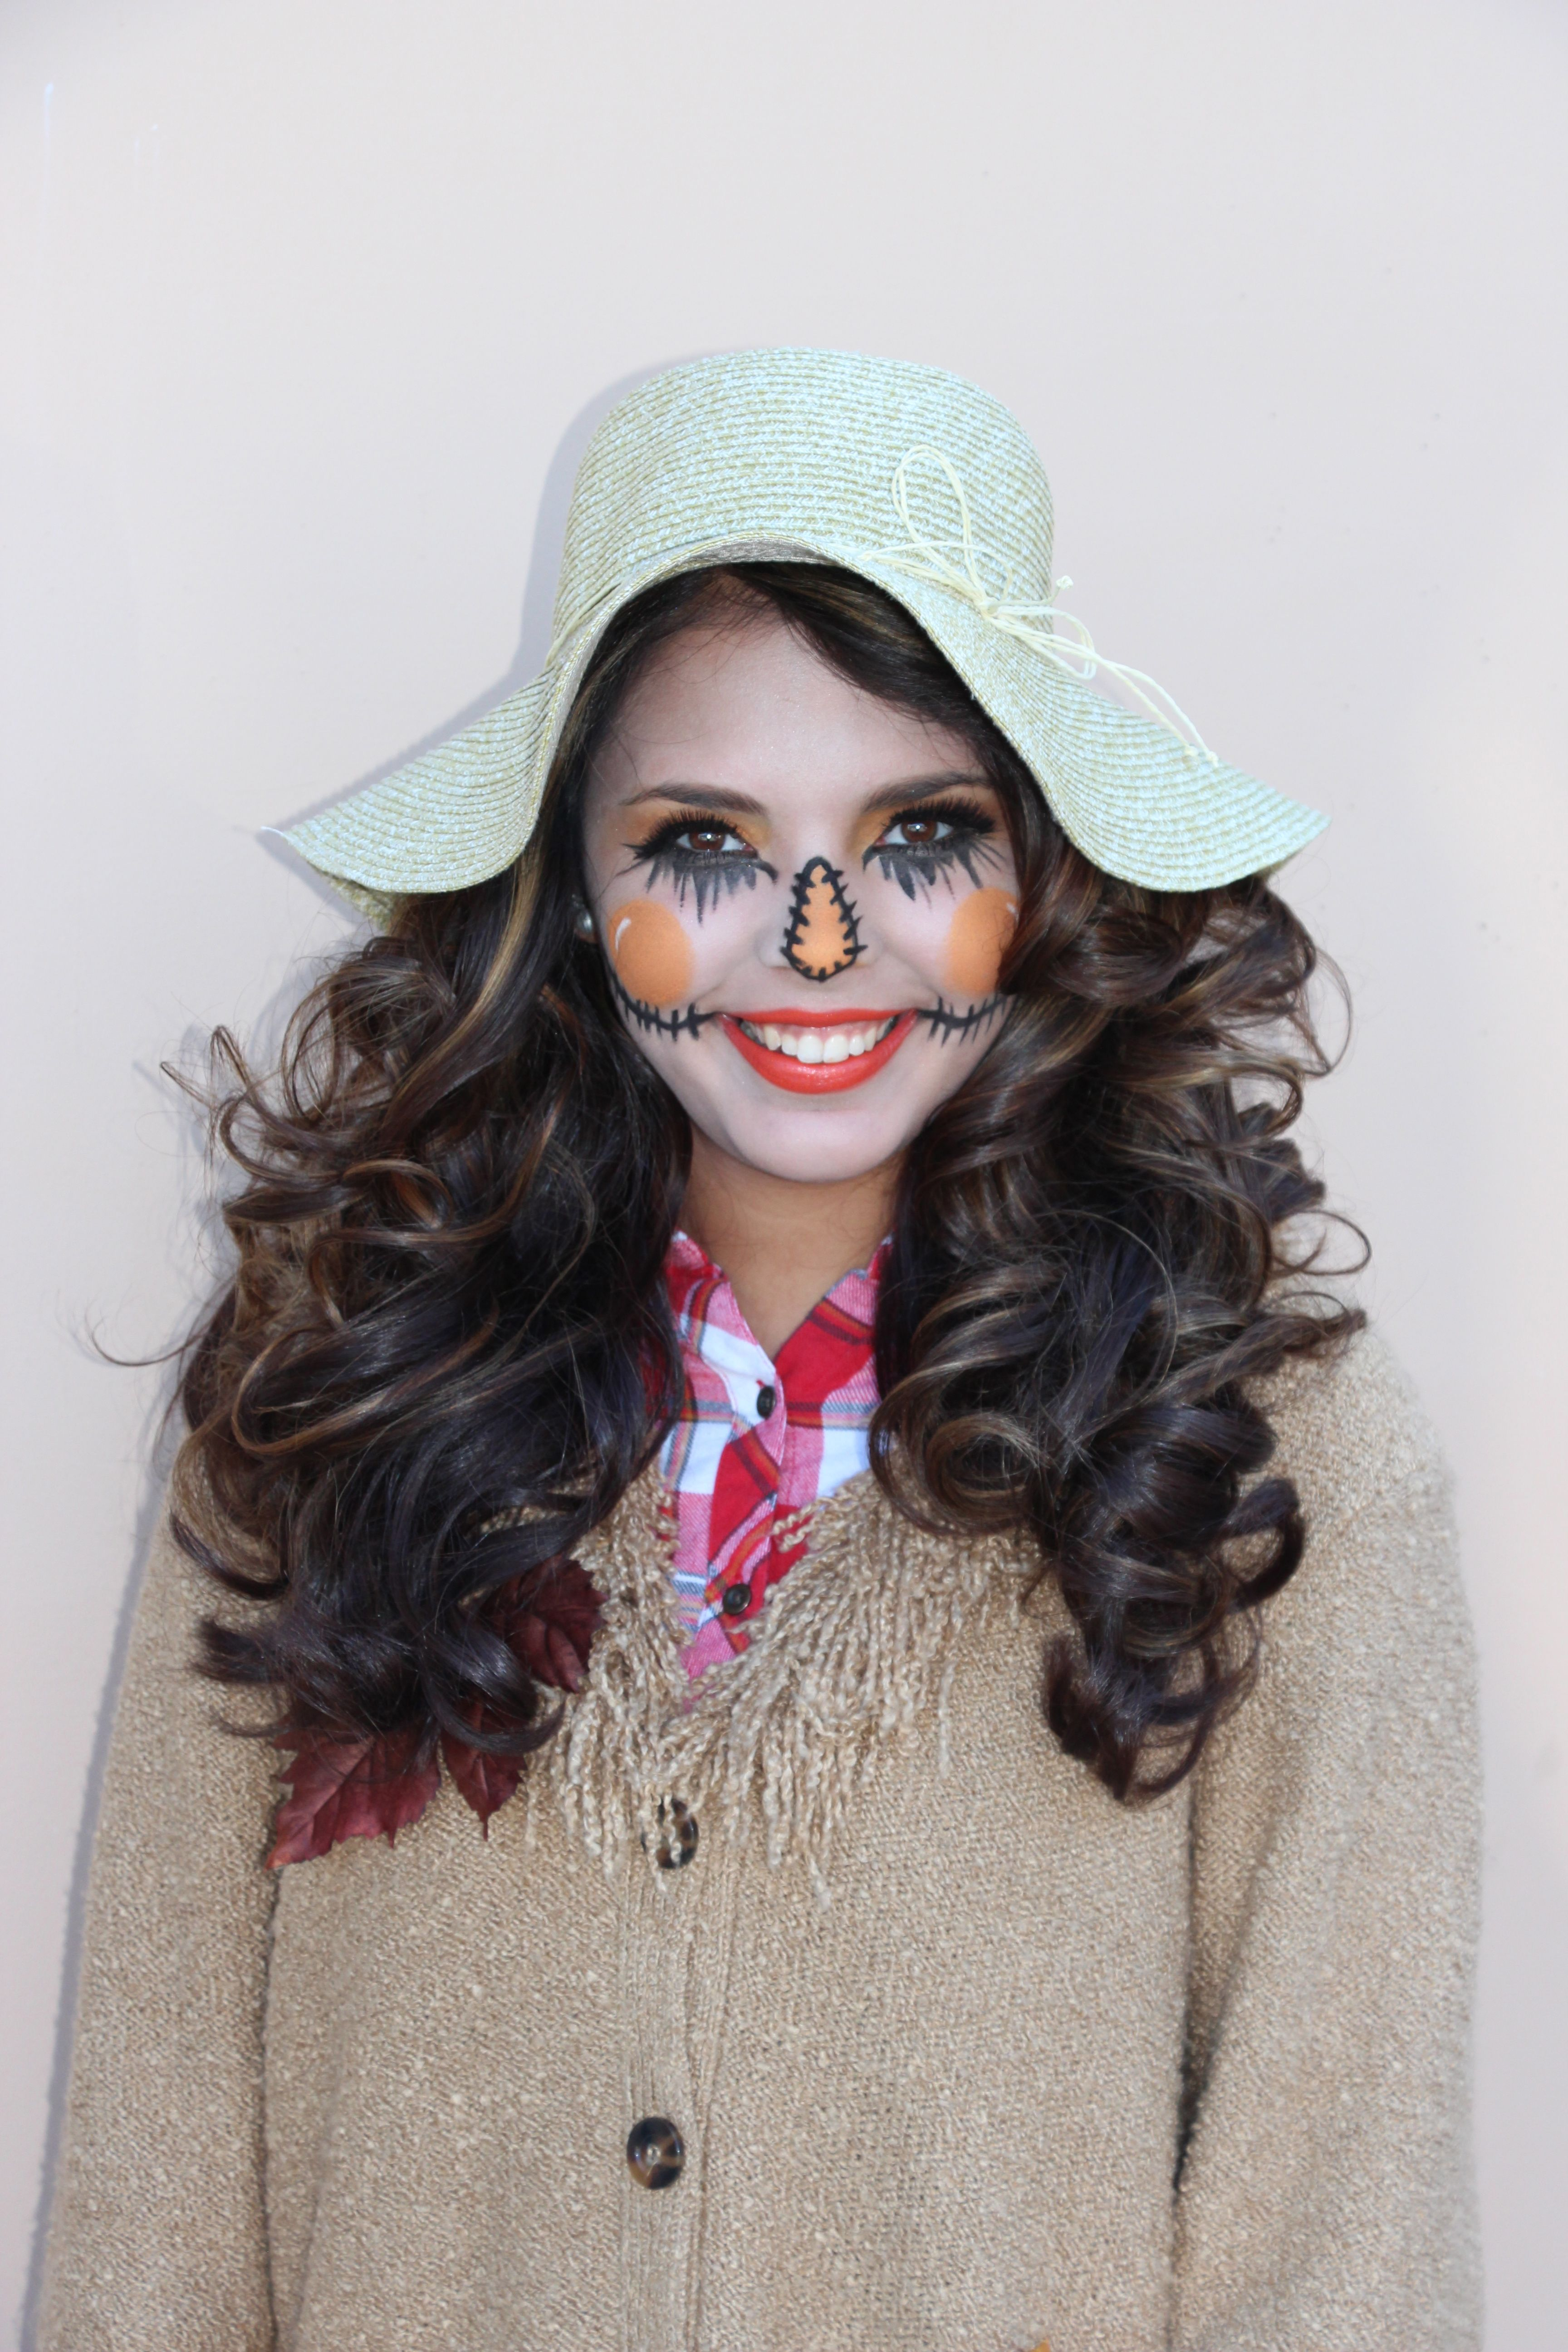 Scarecrow Student fashion, Salon professional, Hair makeup